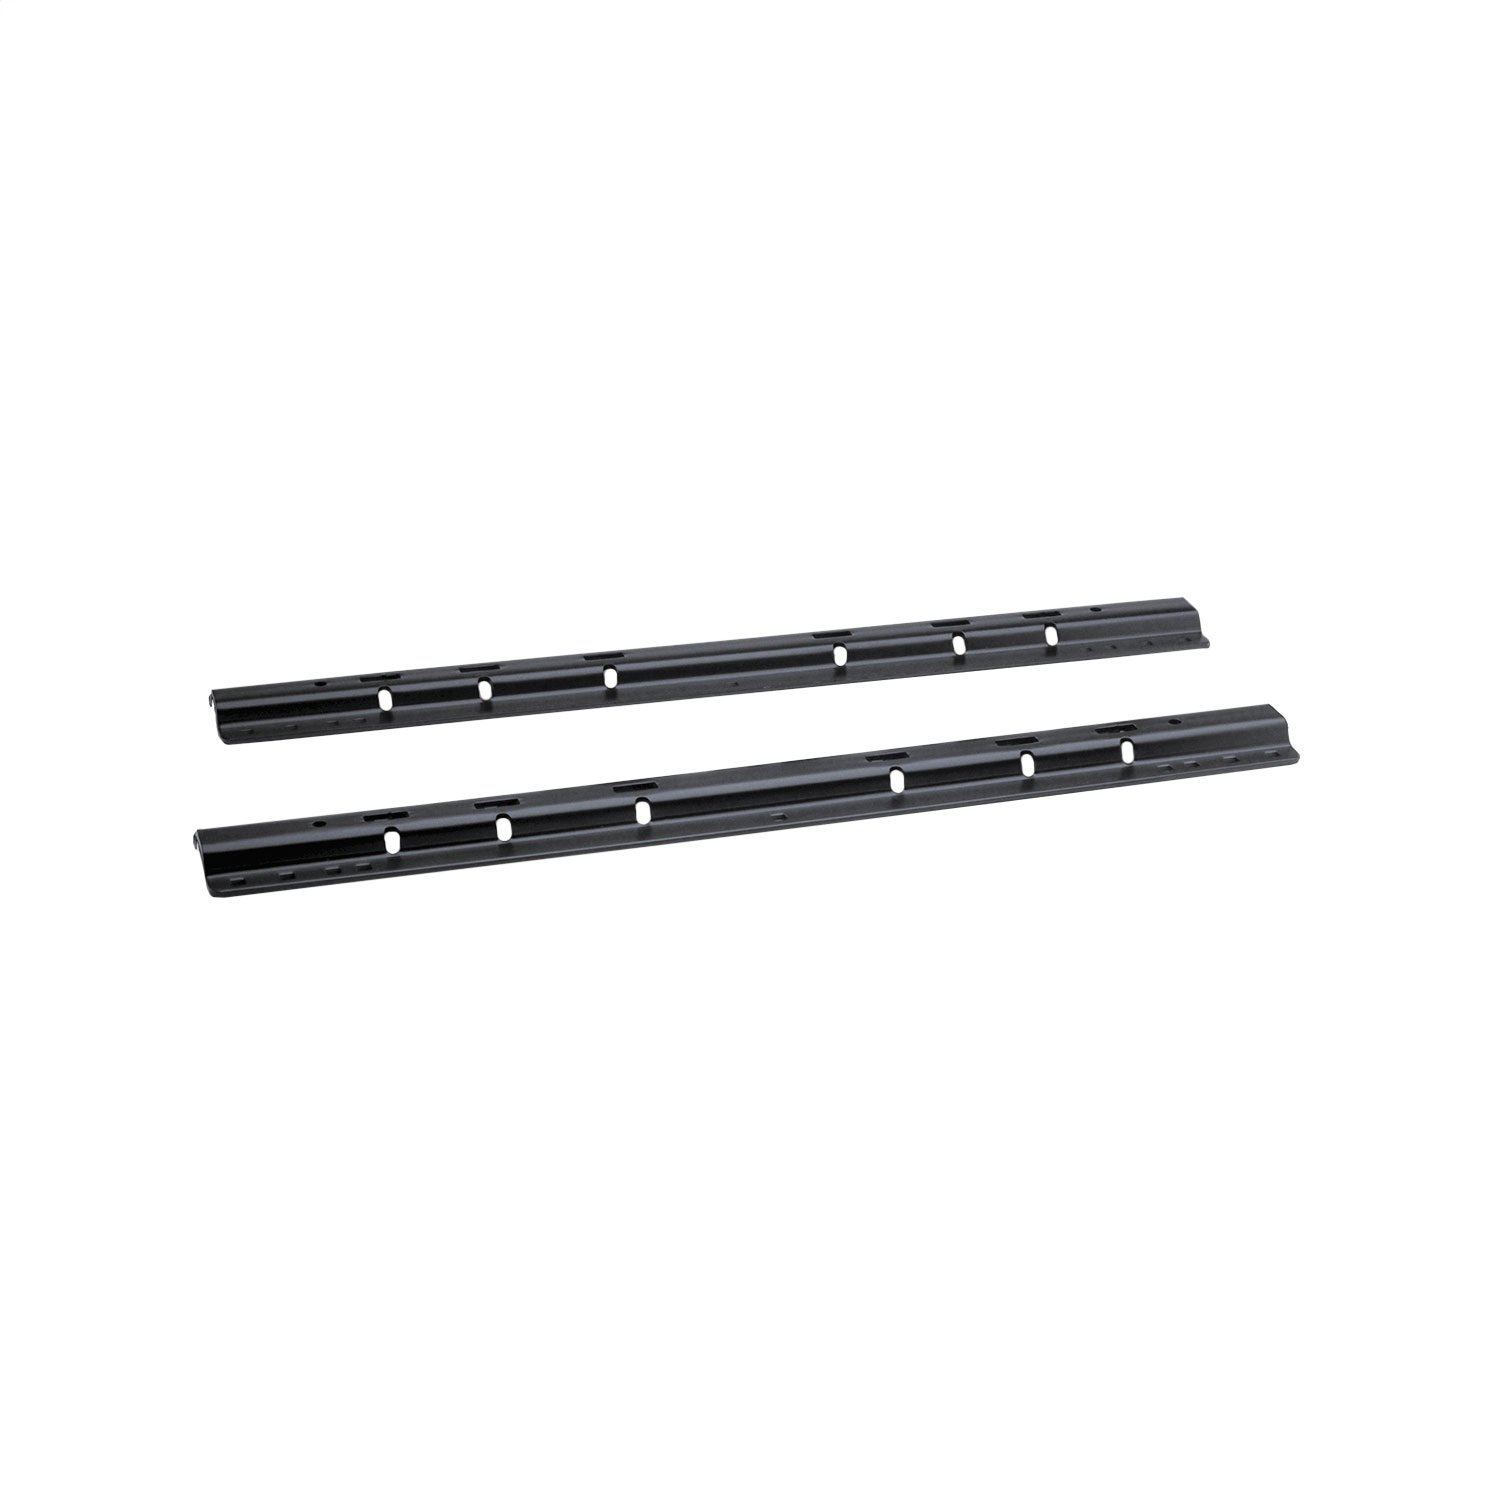 58058 Black Powder Coat 38 lbs. Fifth Wheel Mounting Rails with 10-Bolt Design Pro Series